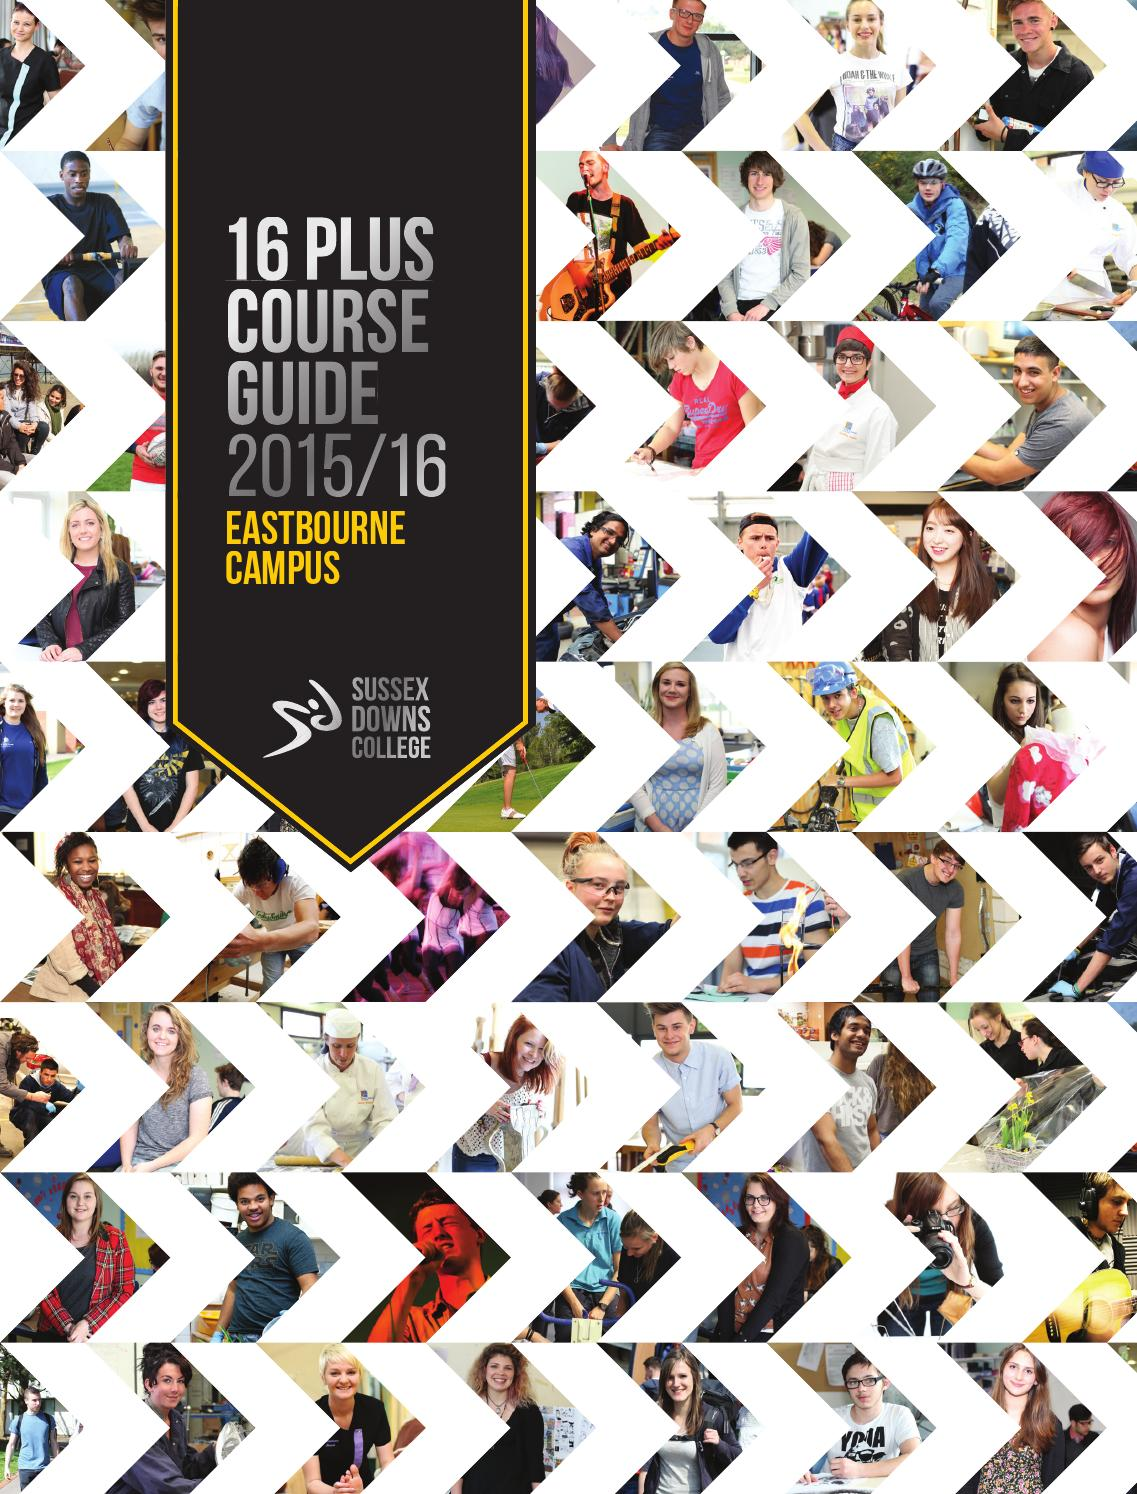 Sussex Downs College 16 Plus Course Guide 2015-16 (Eastbourne) by Sussex  Downs College - issuu